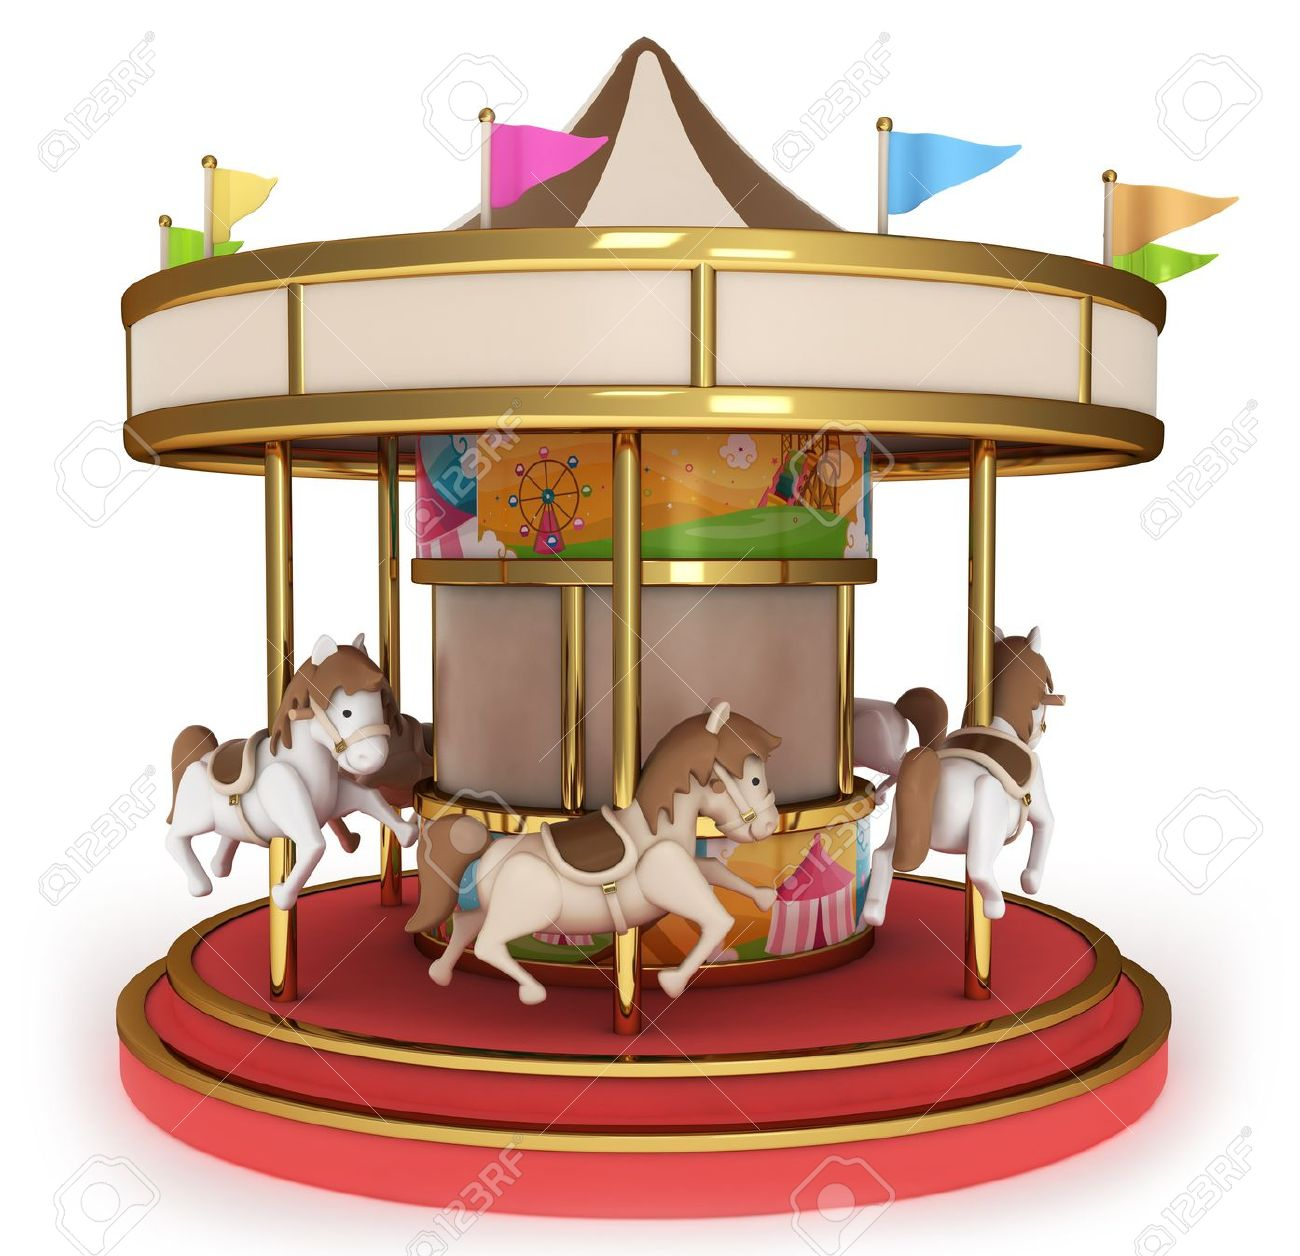 1300x1256 Animal Ride Carousel In An Amusement Park Clipart